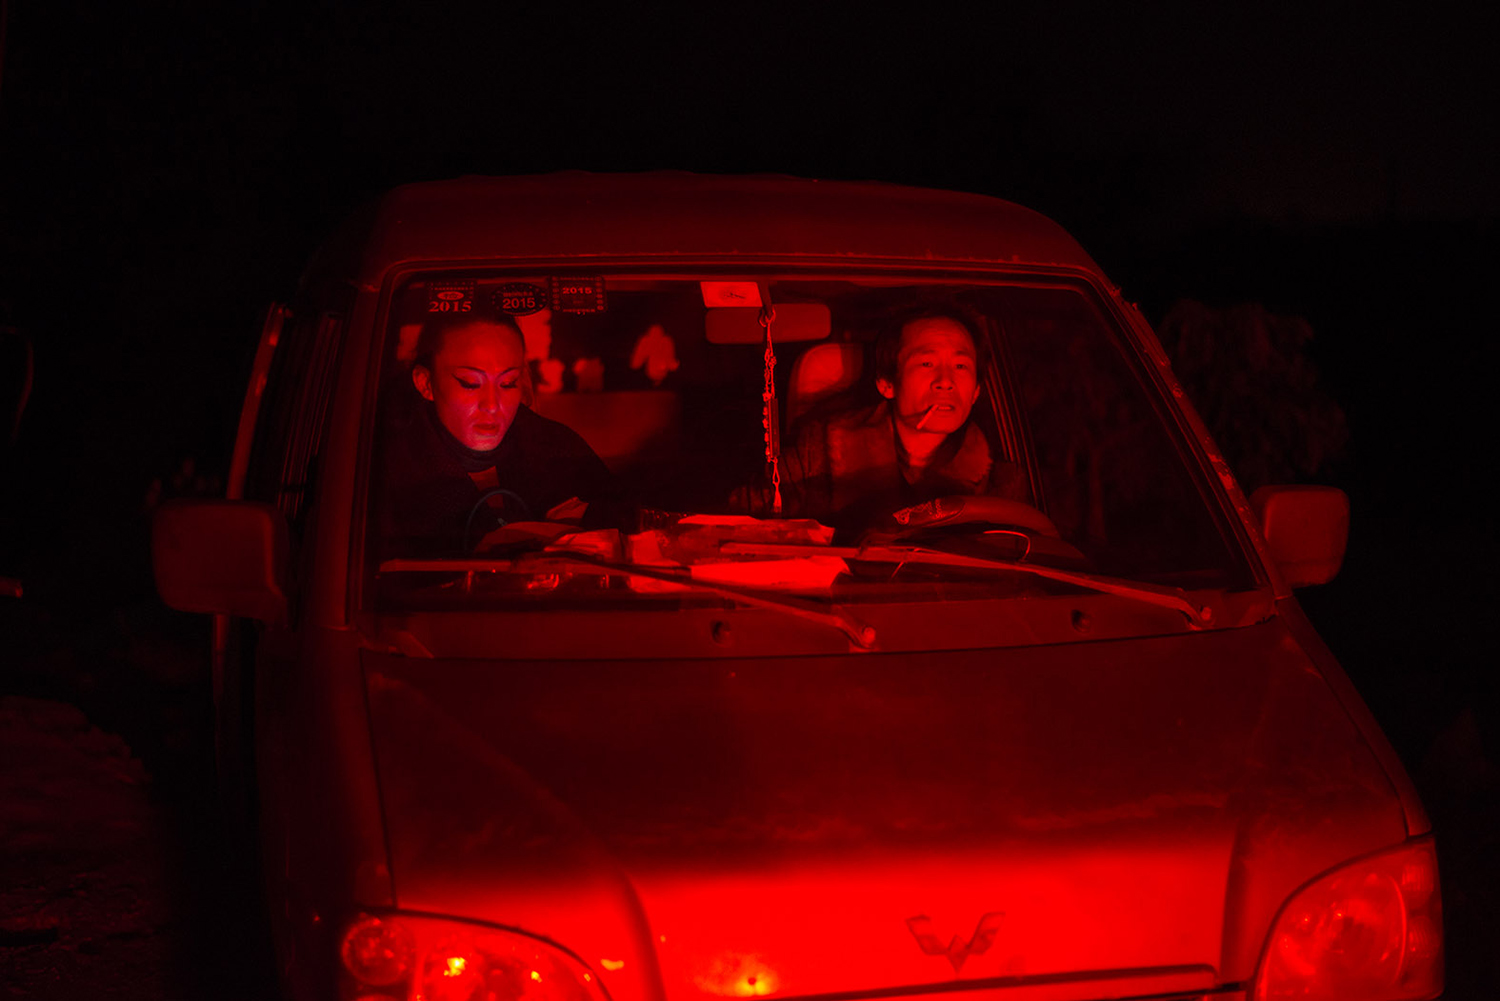 Liangzi counts money in a car after a funeral performance, February 24, 2015.